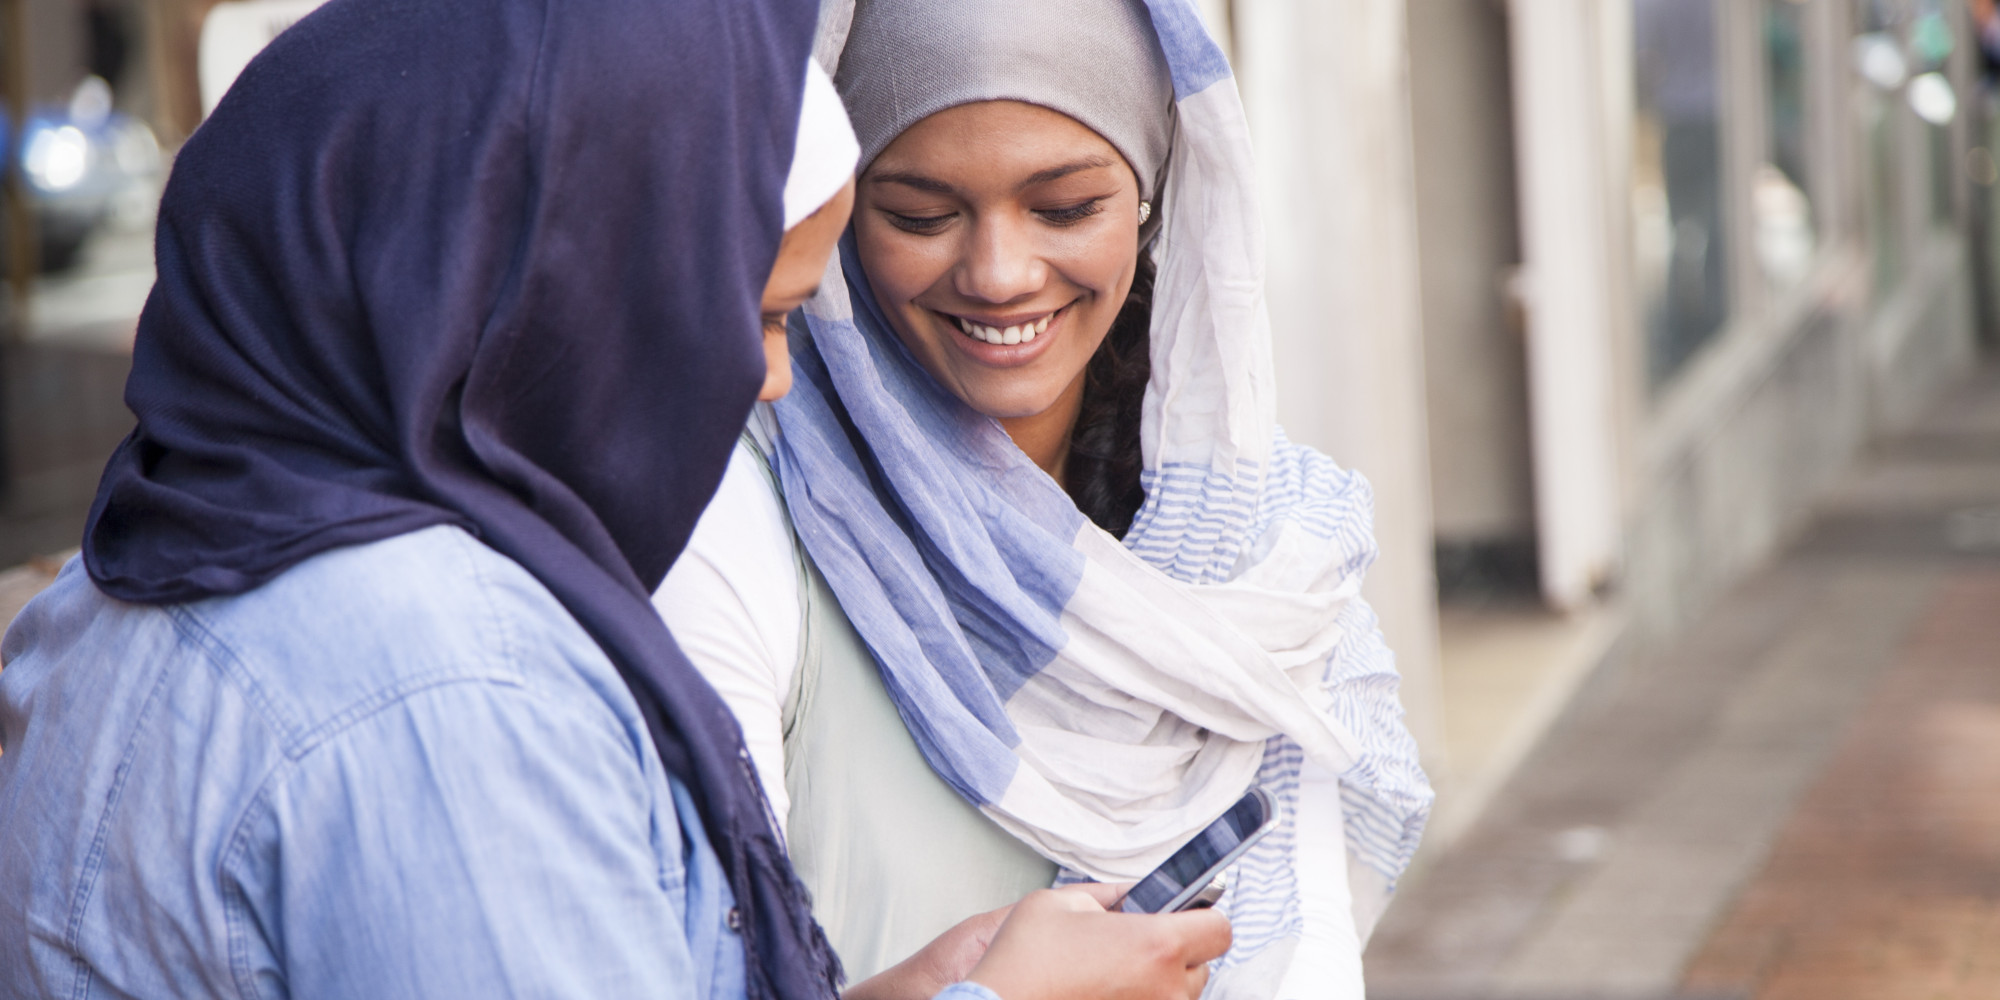 cramerton muslim single women Search the world's information, including webpages, images, videos and more google has many special features to help you find exactly what you're looking for.